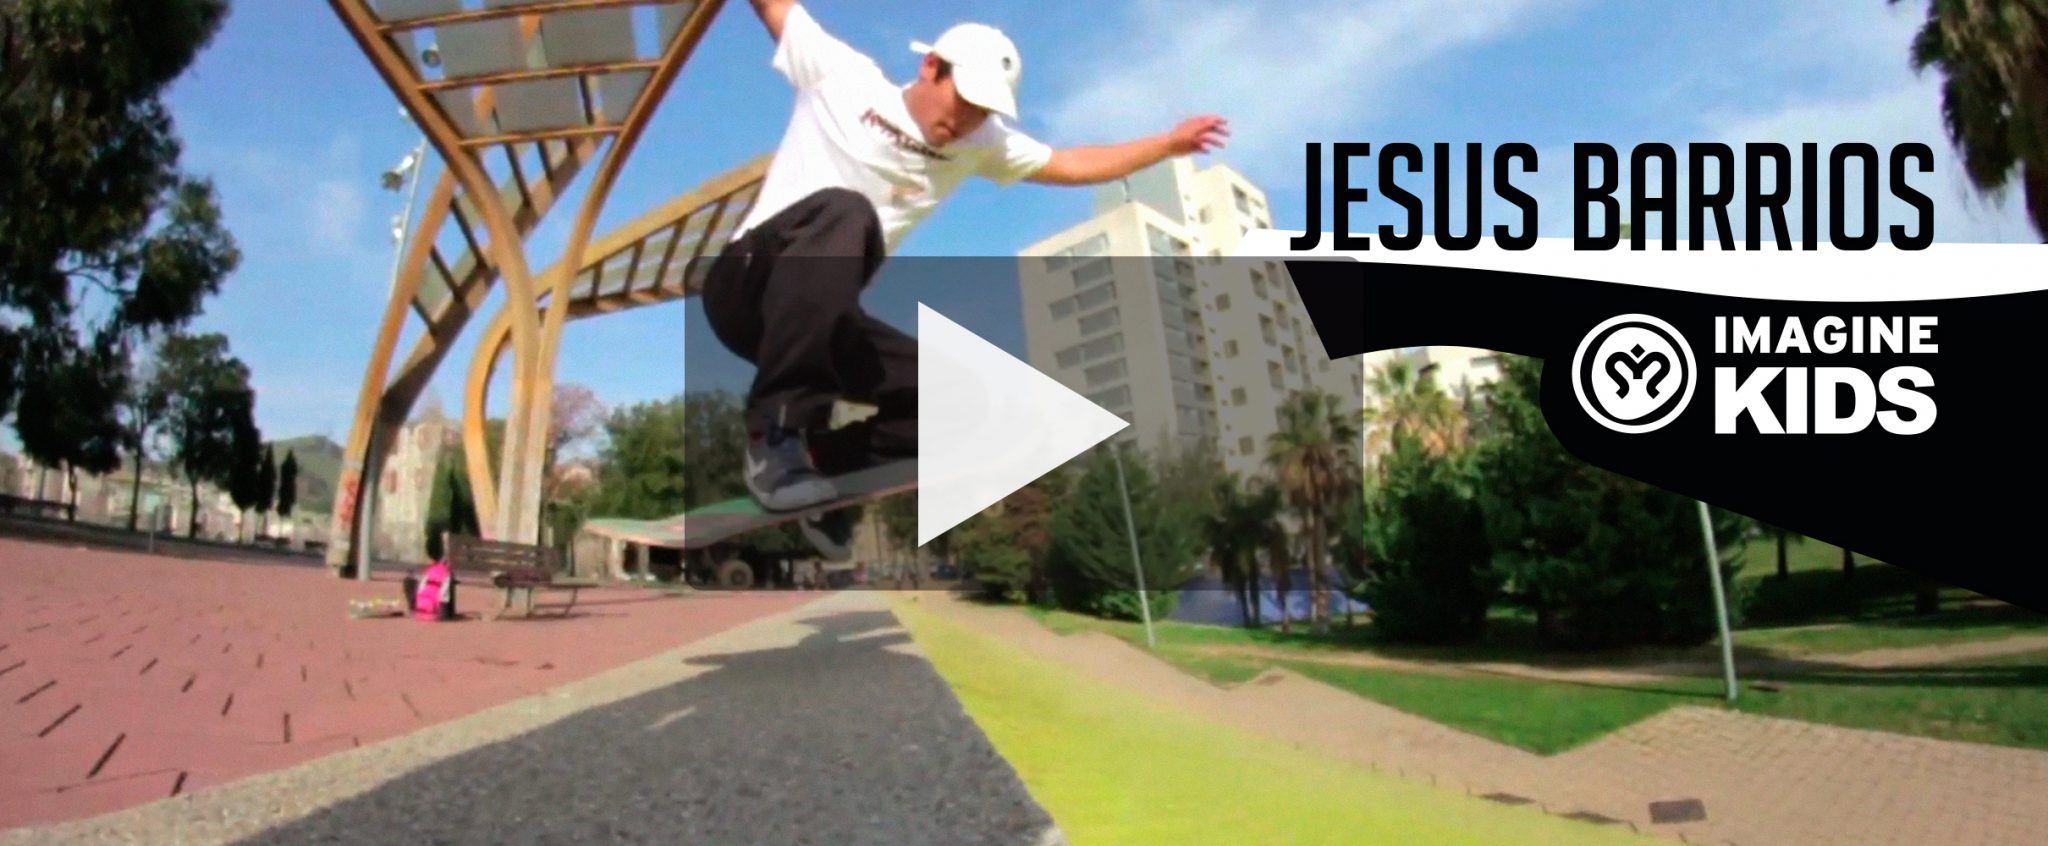 Jesus Barrios - Welcome Video